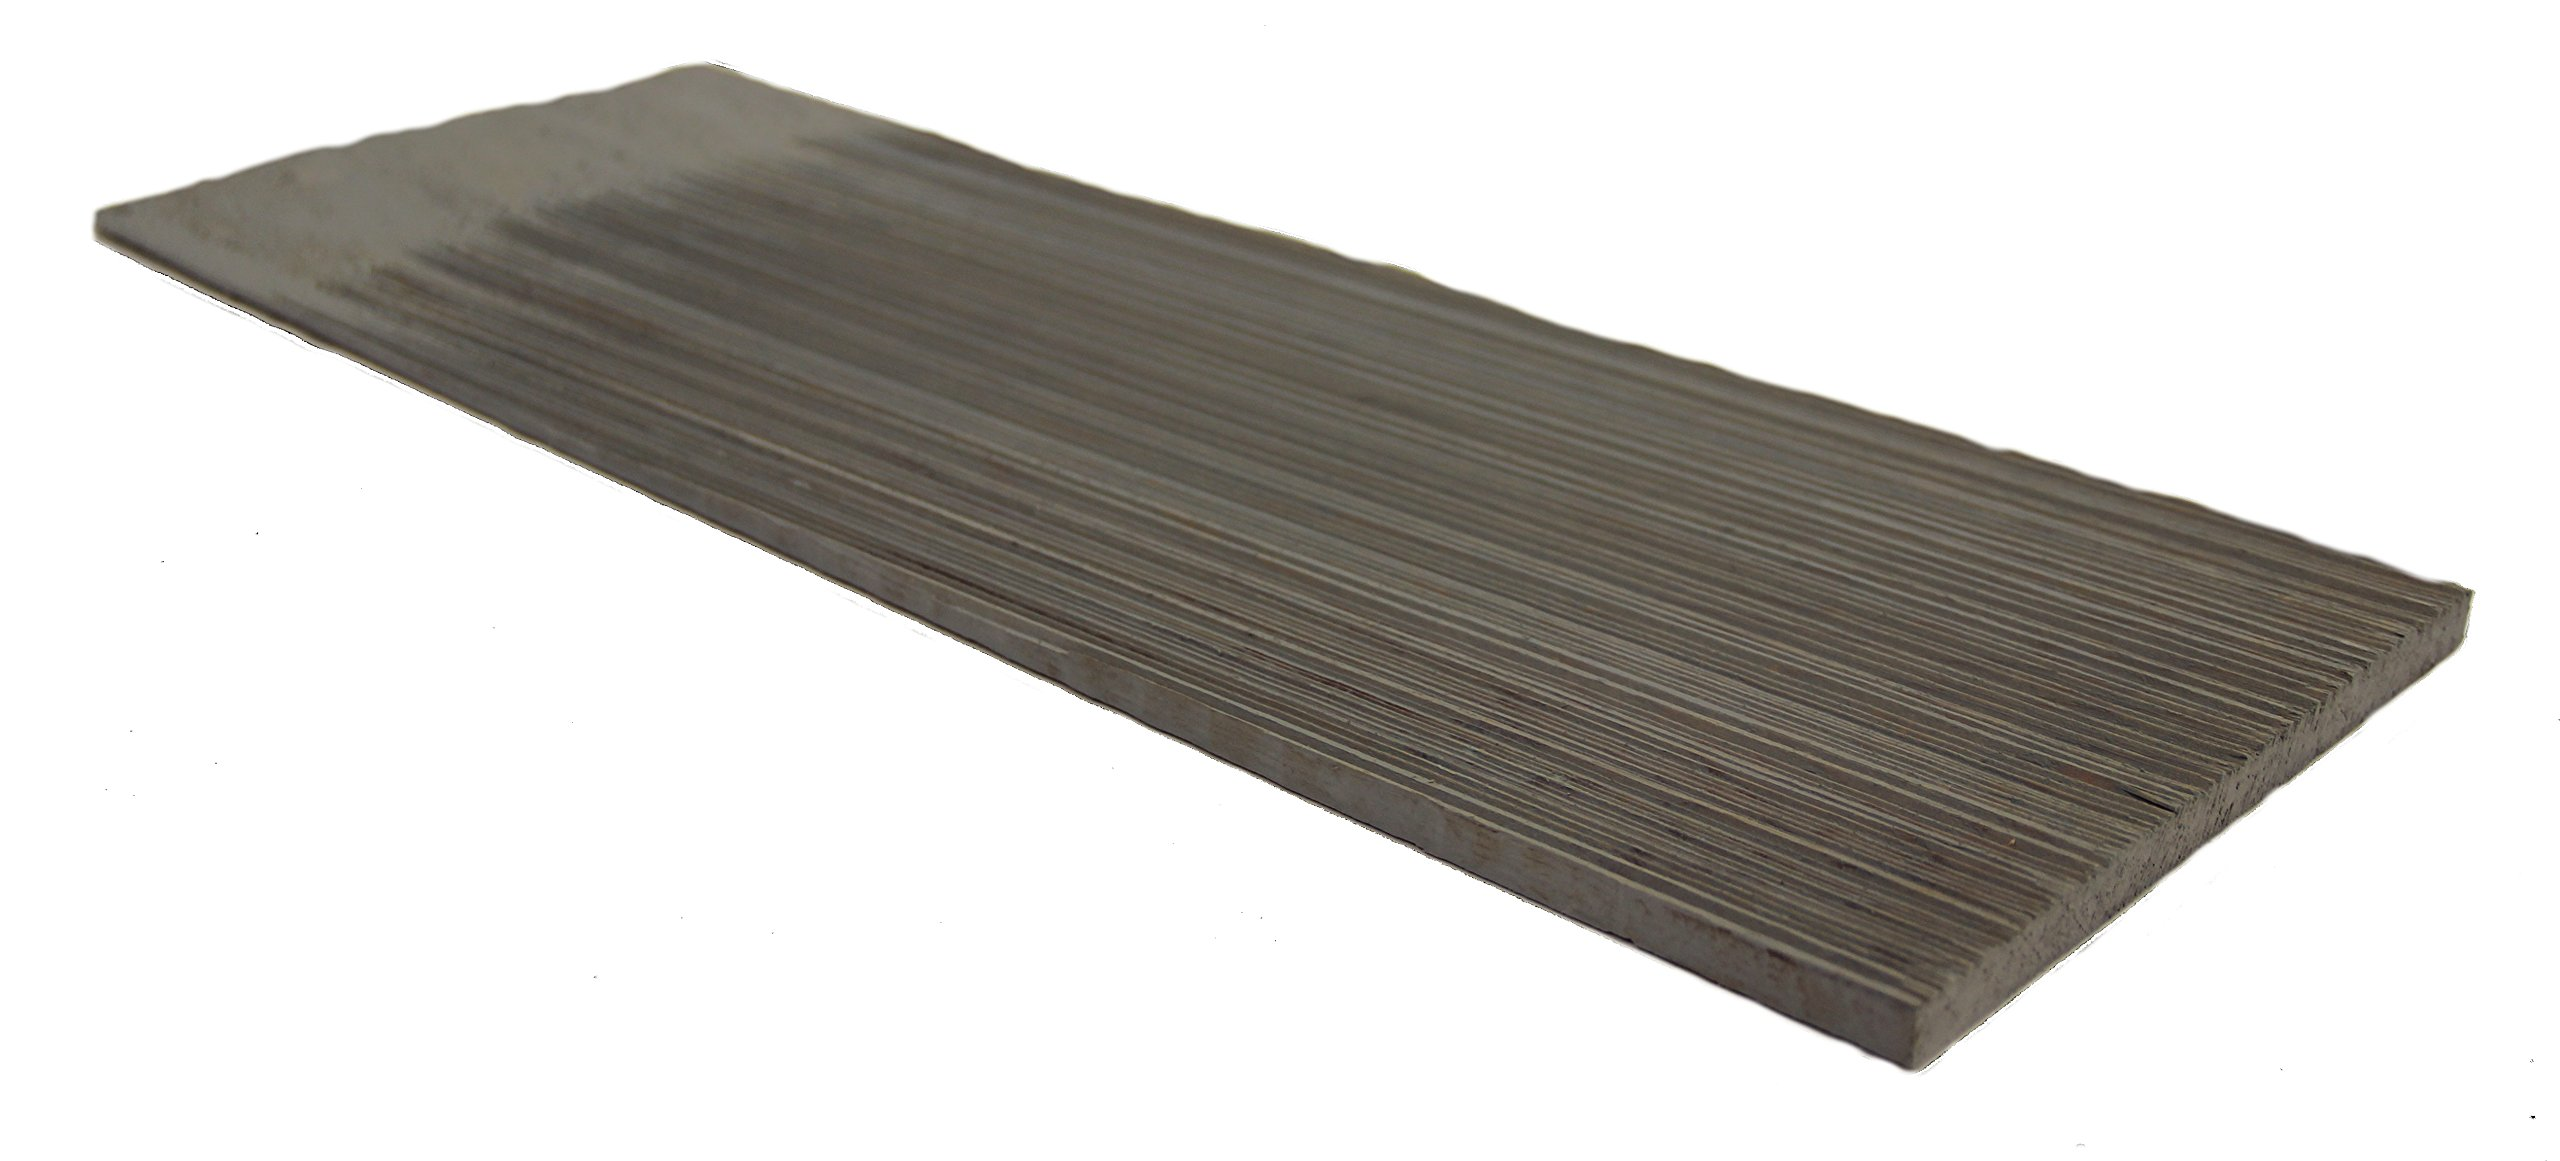 Western Red Cedar 18'' R&R Primed Gray Grooved Sidewall Shingles Full square cartons